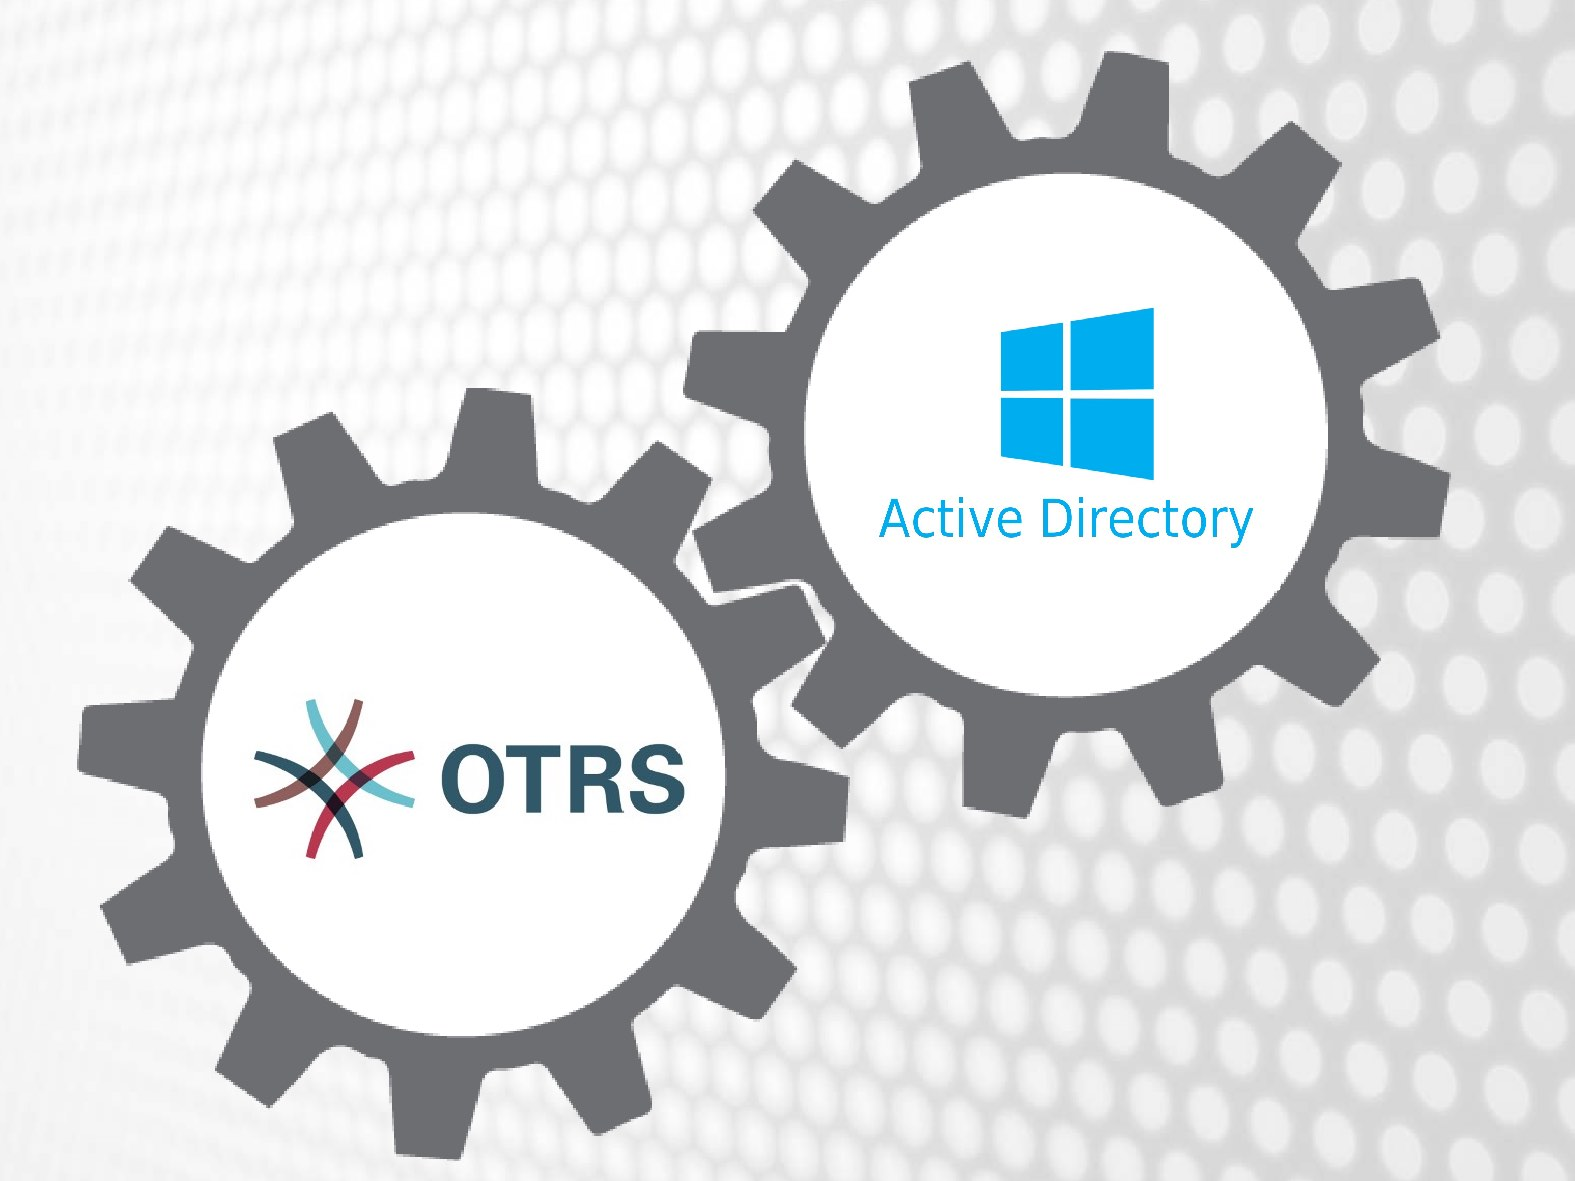 OTRS Active Directory